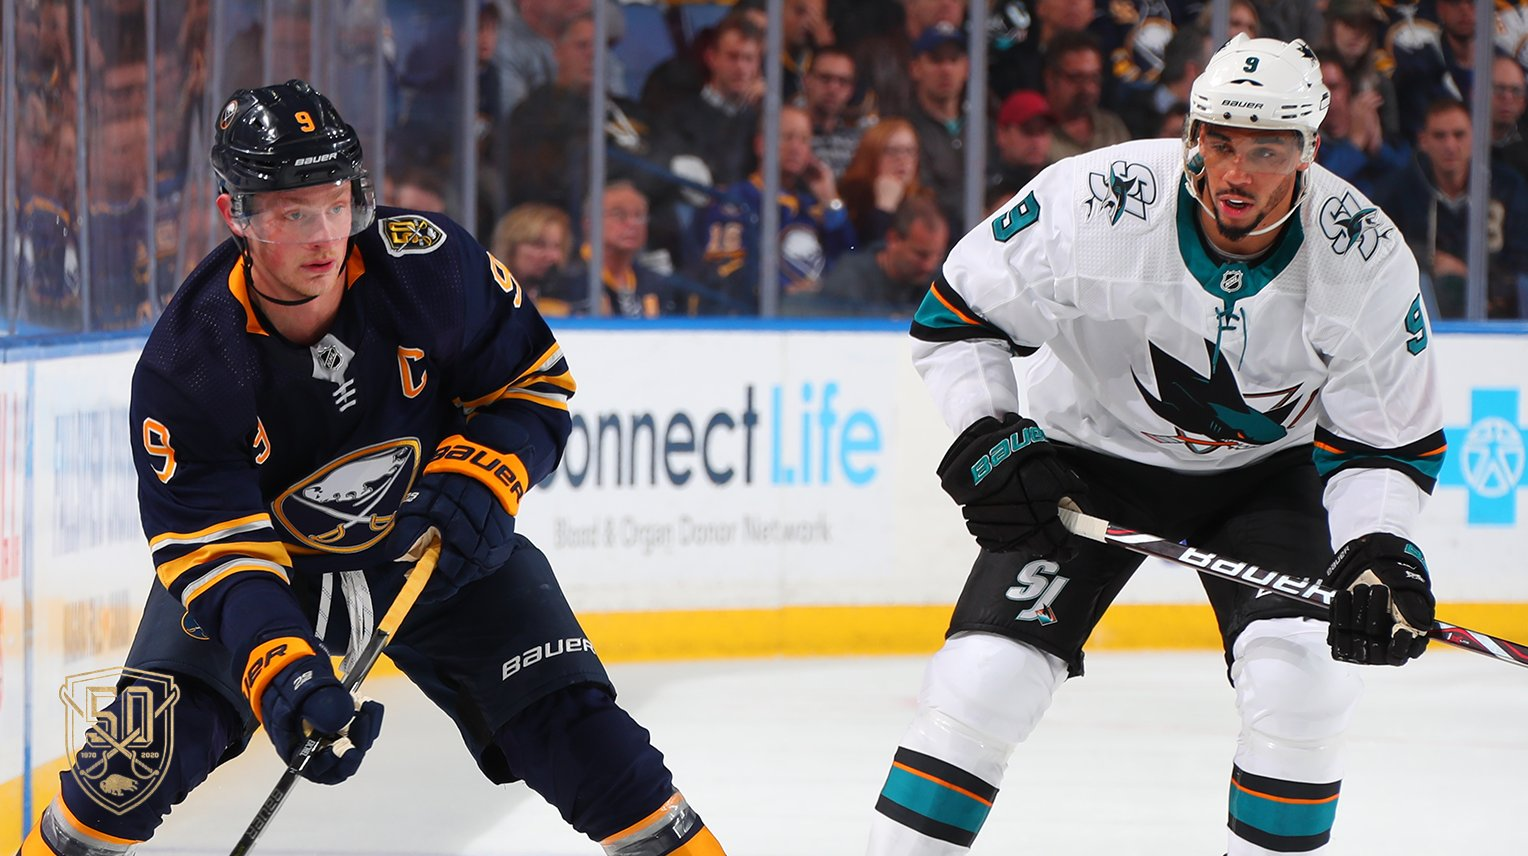 Sabres top Sharks in overtime